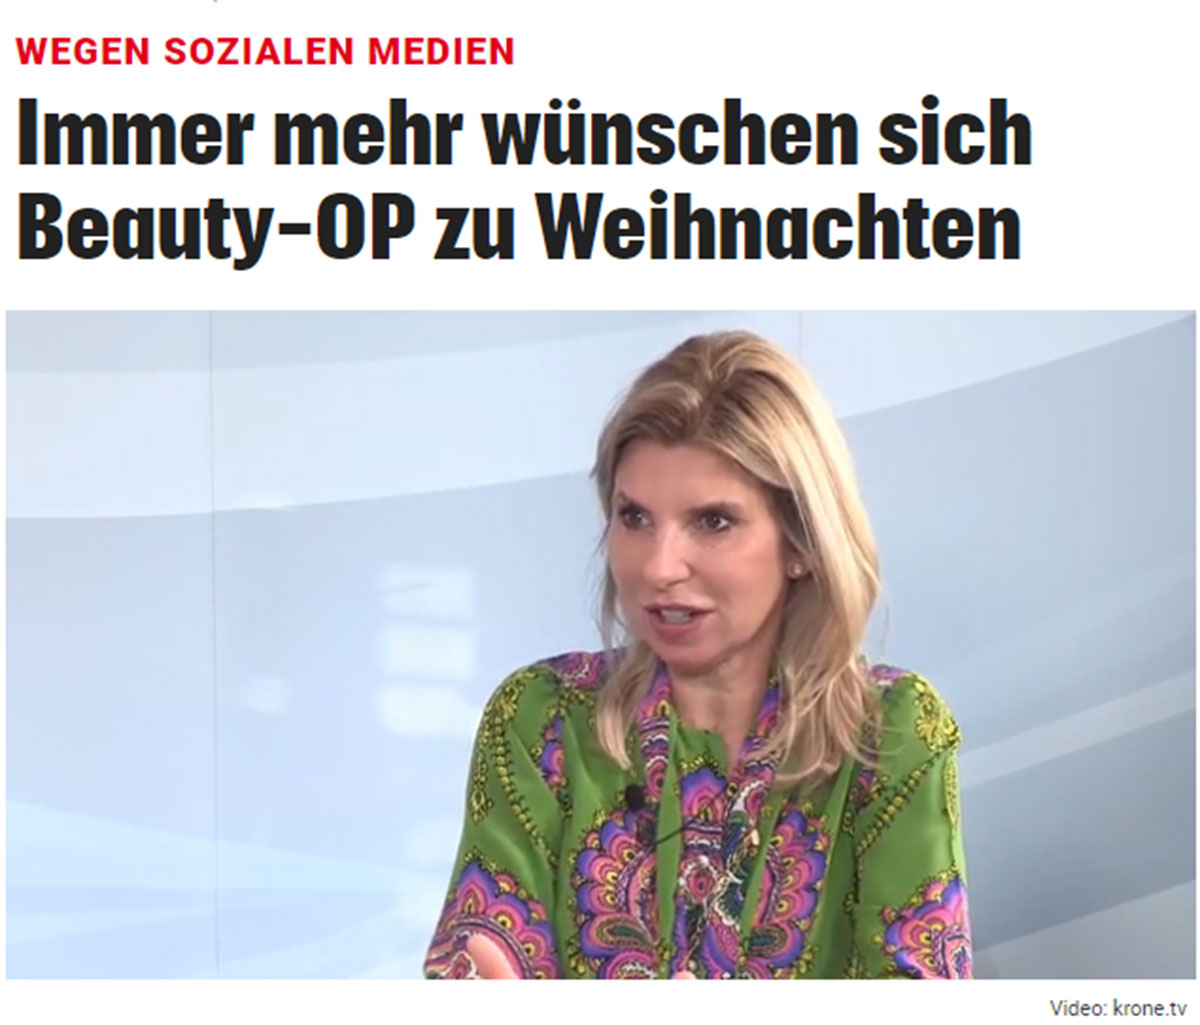 Dr. Doris Wallentin im krone.tv-Interview